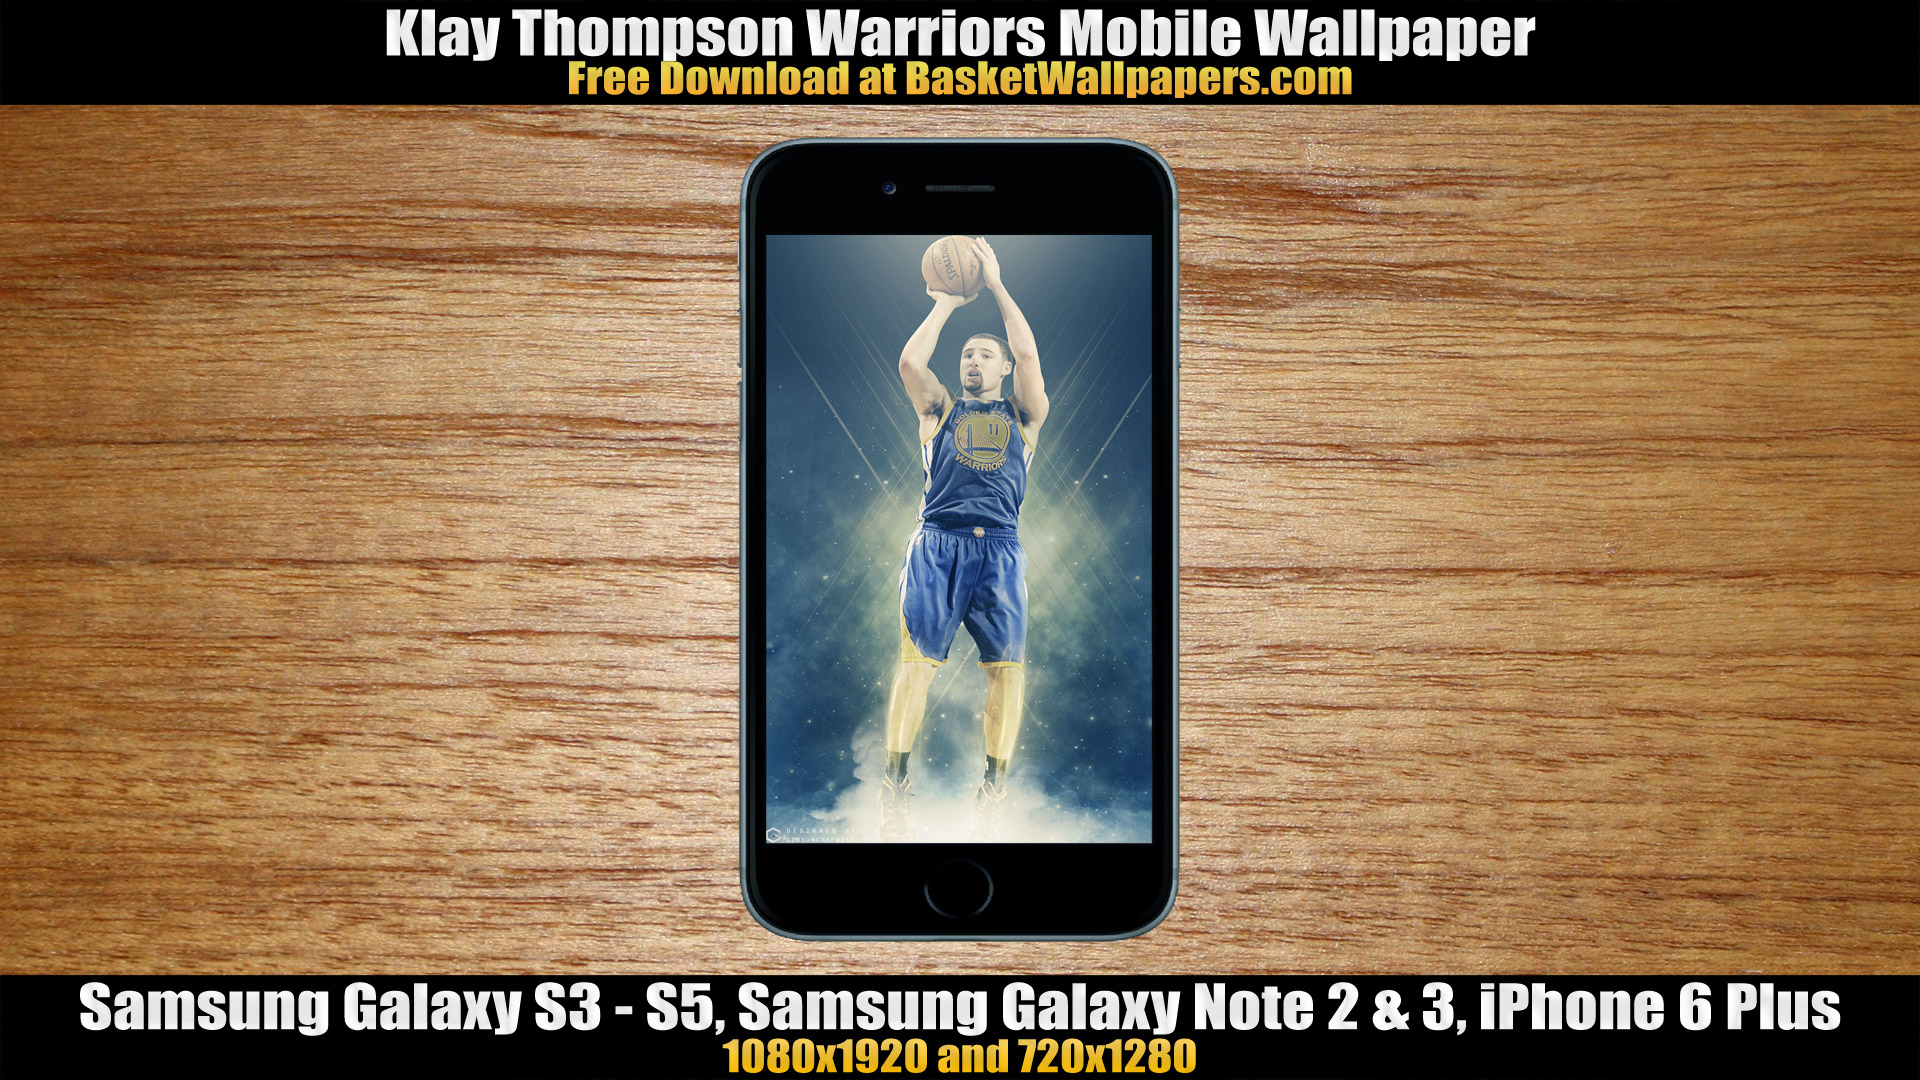 Klay Thompson Warriors Mobile Wallpaper